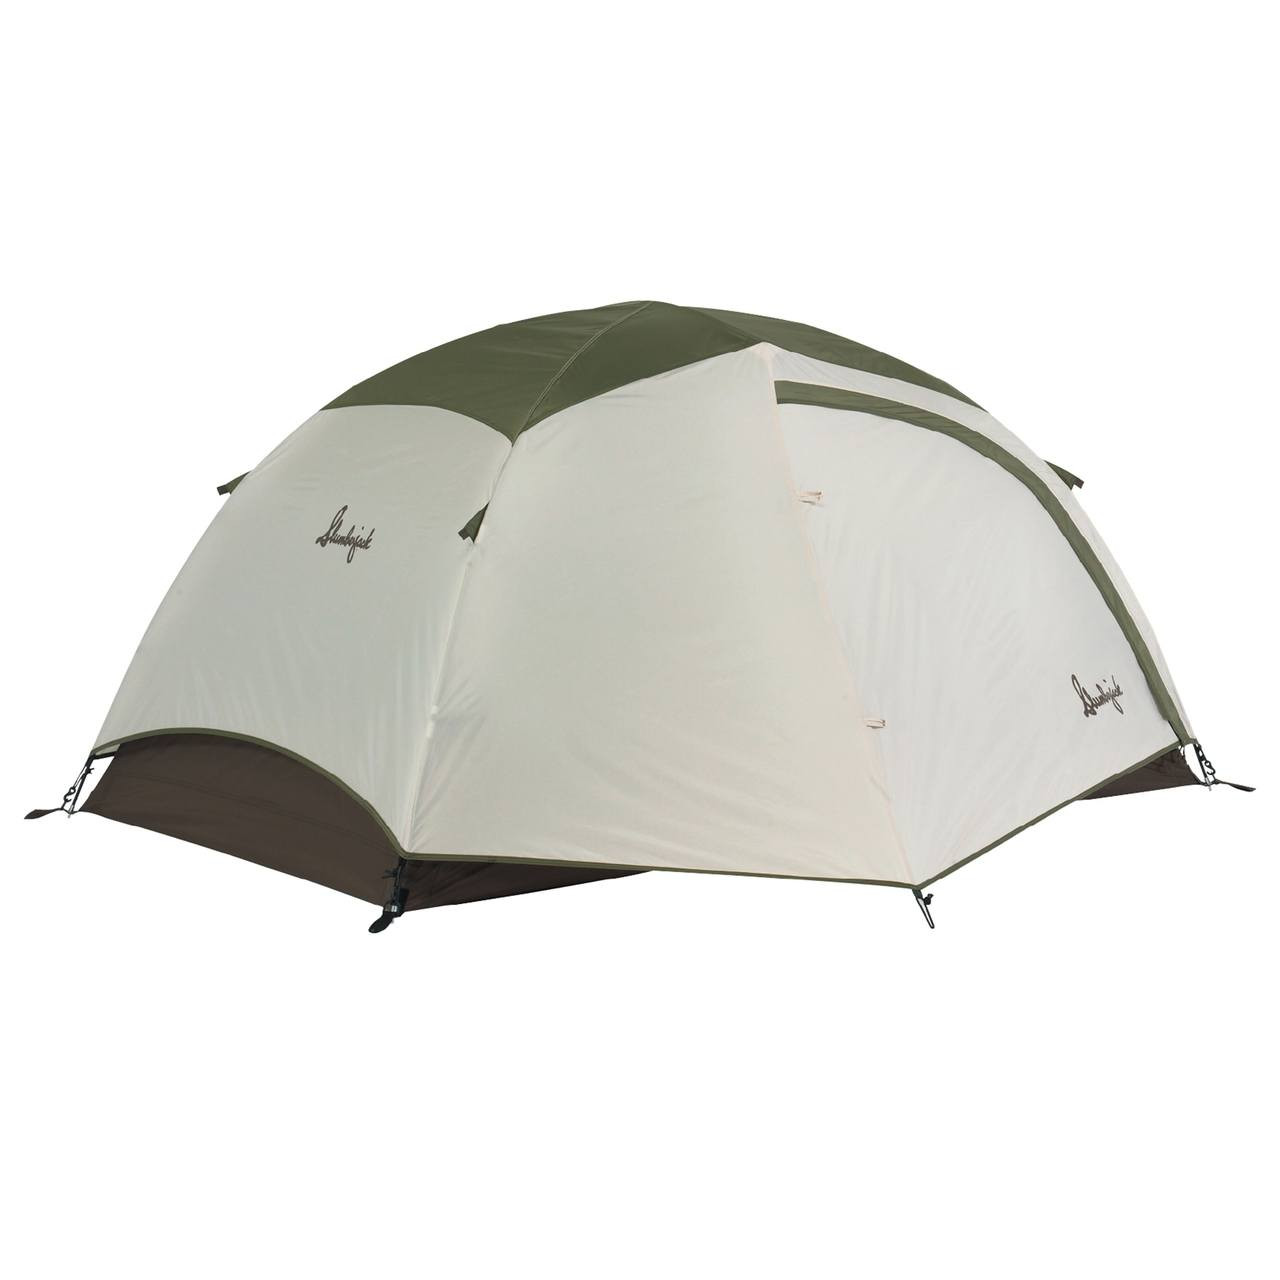 Image 1 · Image 2  sc 1 st  Slumberjack & Slumberjack Trail Tent 3 | Backpacking 3-Person Tent | Camping